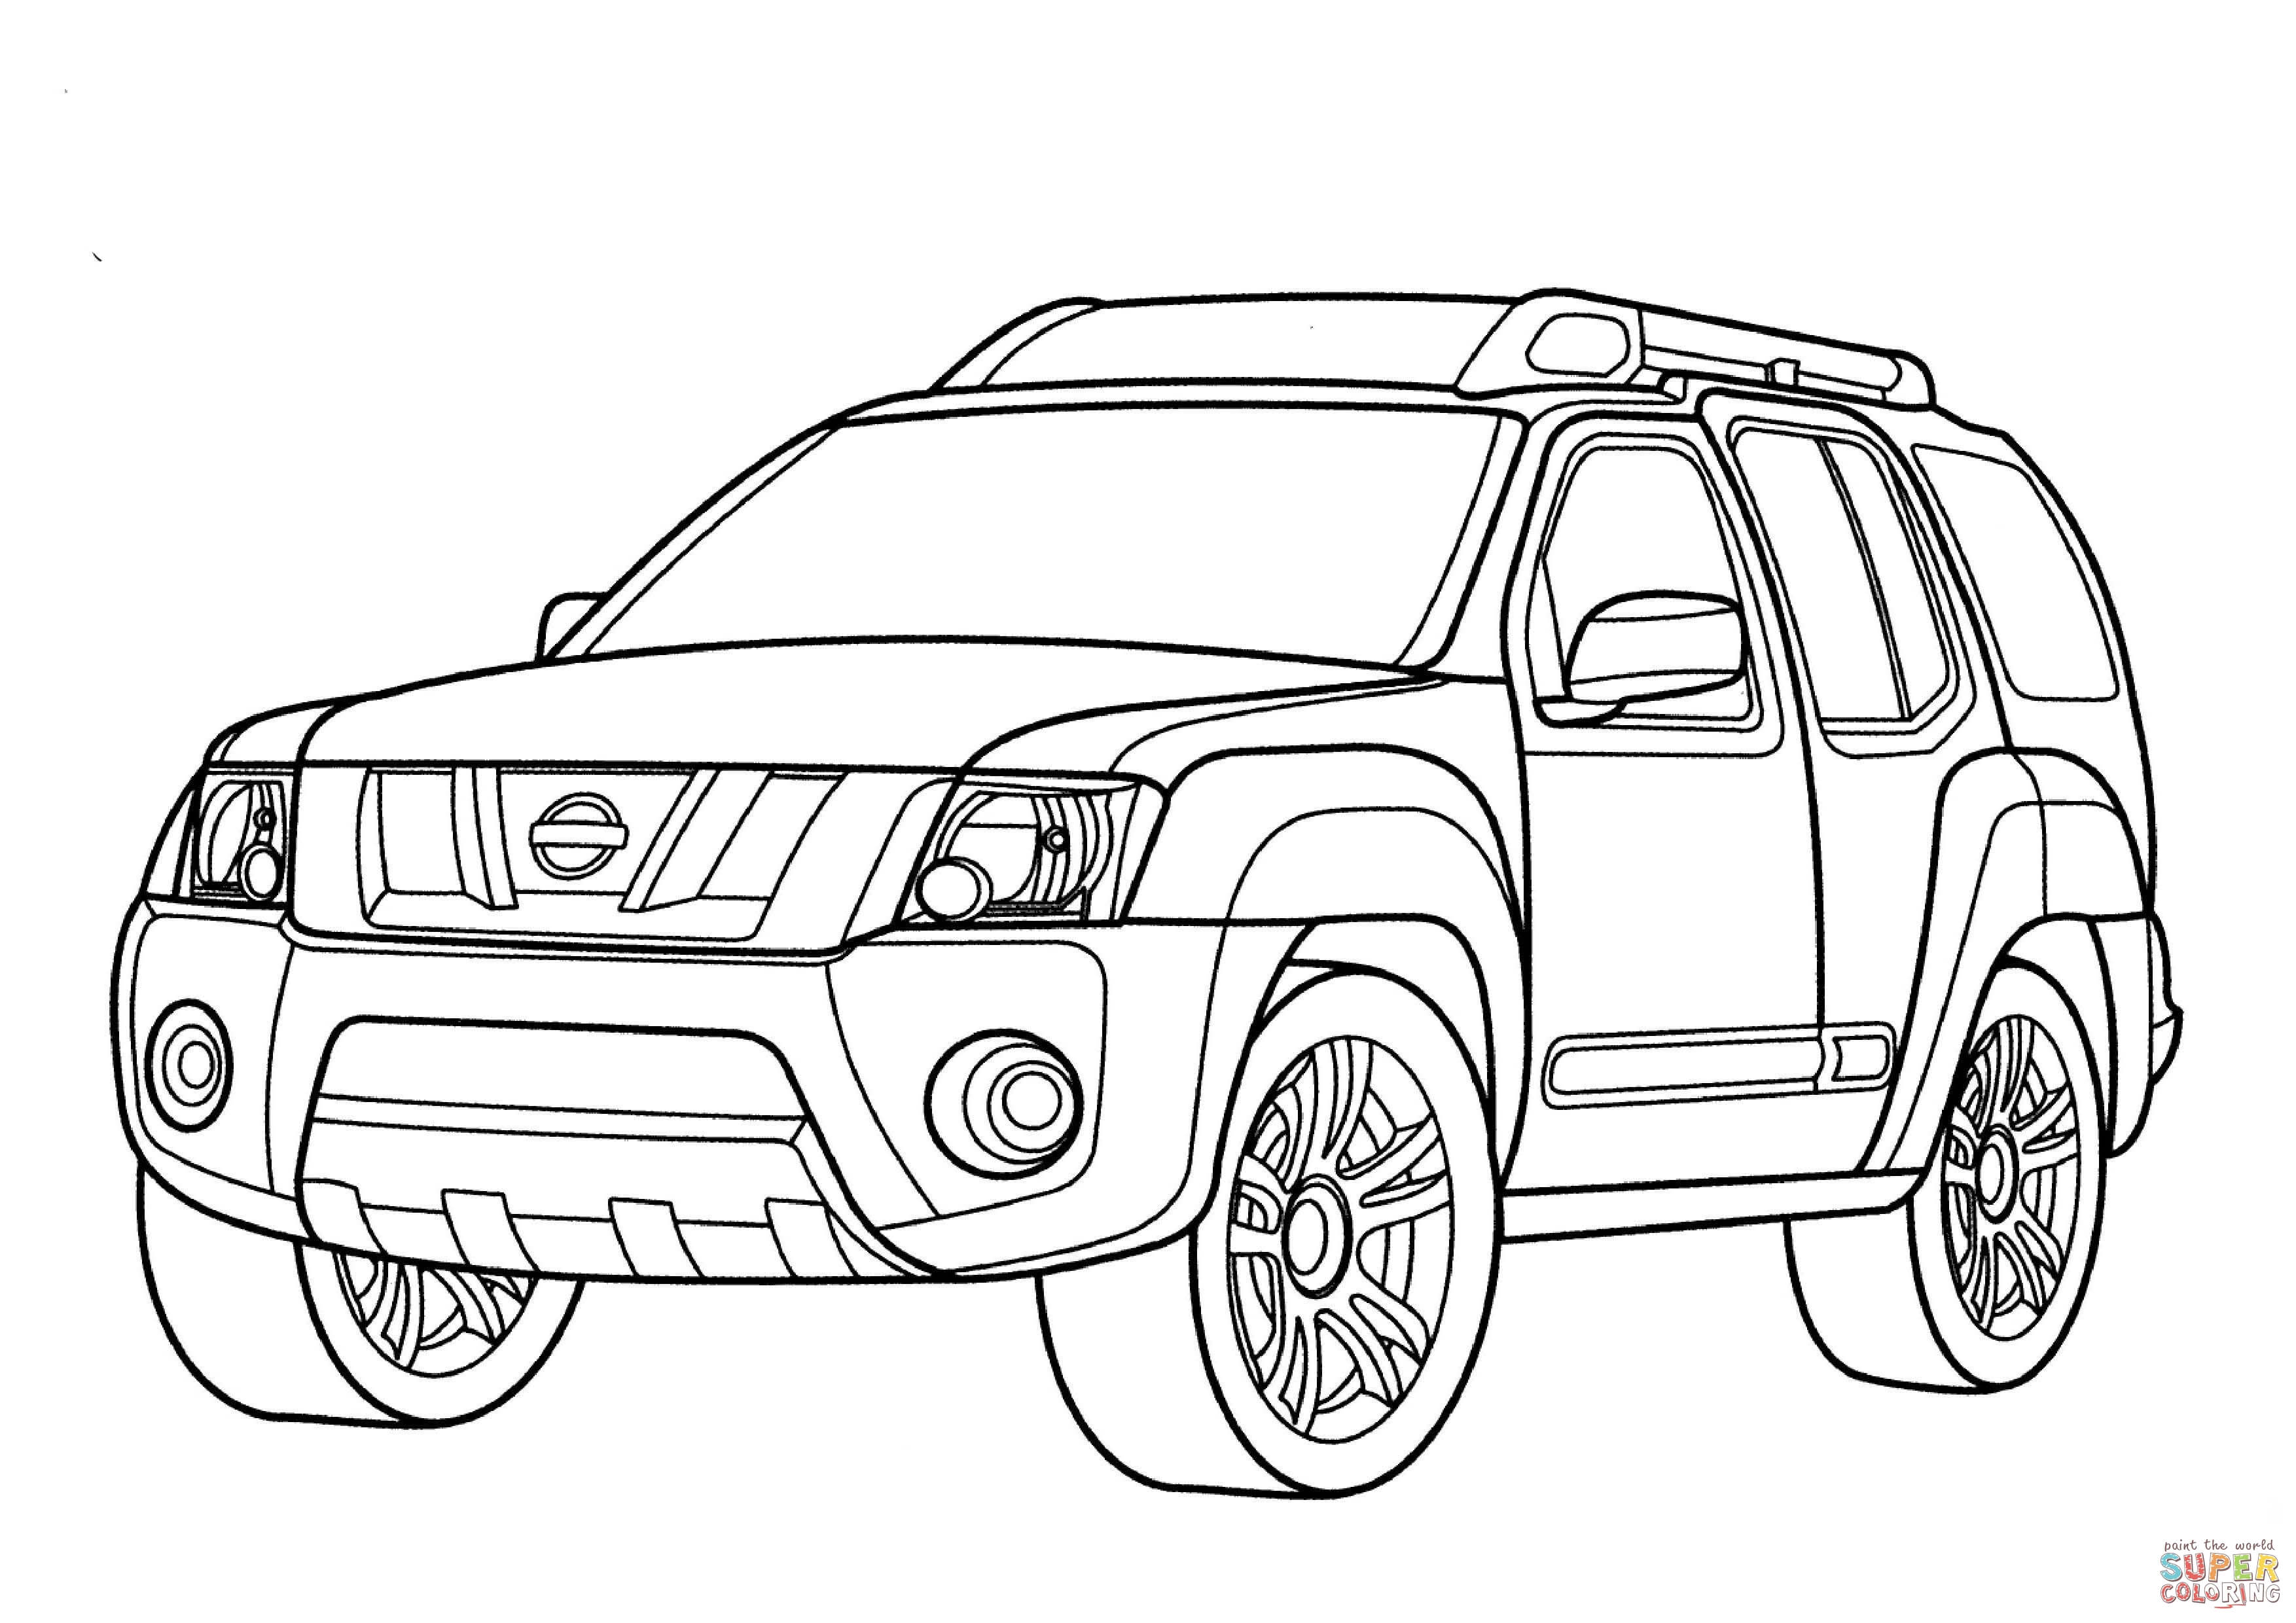 Nissan P17 Coloring Page